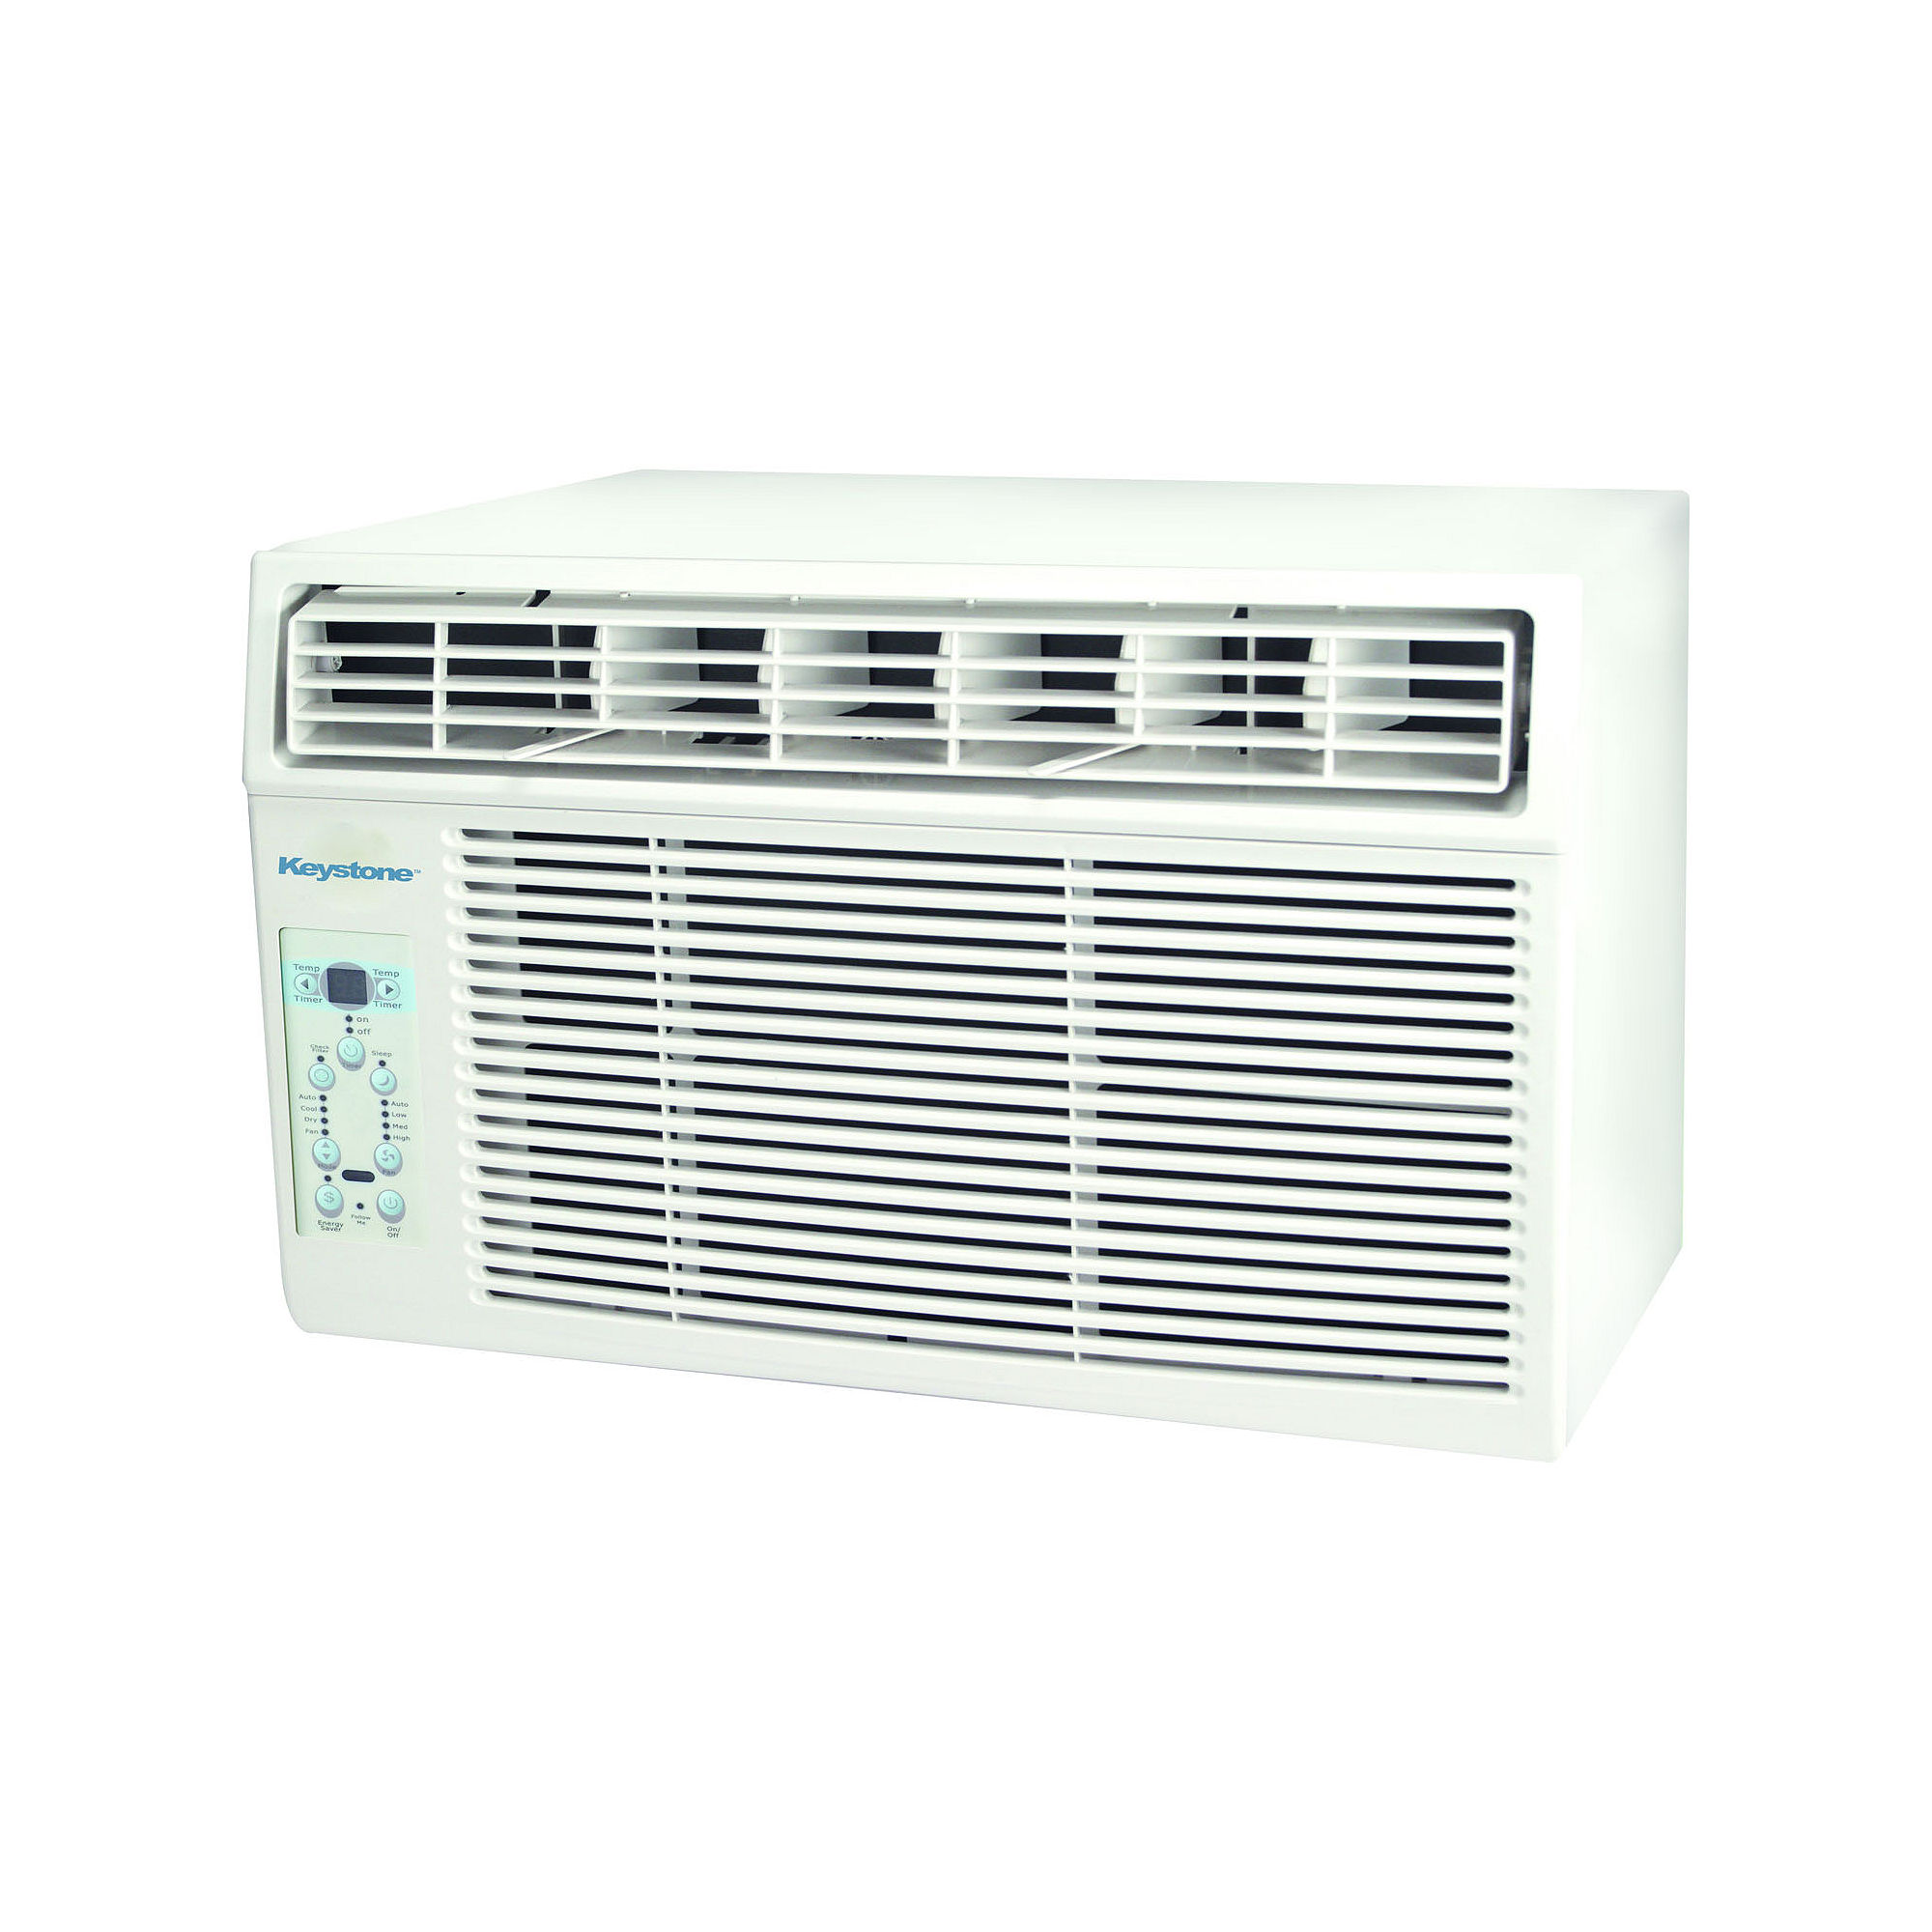 "Keystone Energy Star 8000 BTU Window-Mounted Air Conditioner with ""Follow Me"" LCD Remote Control"""